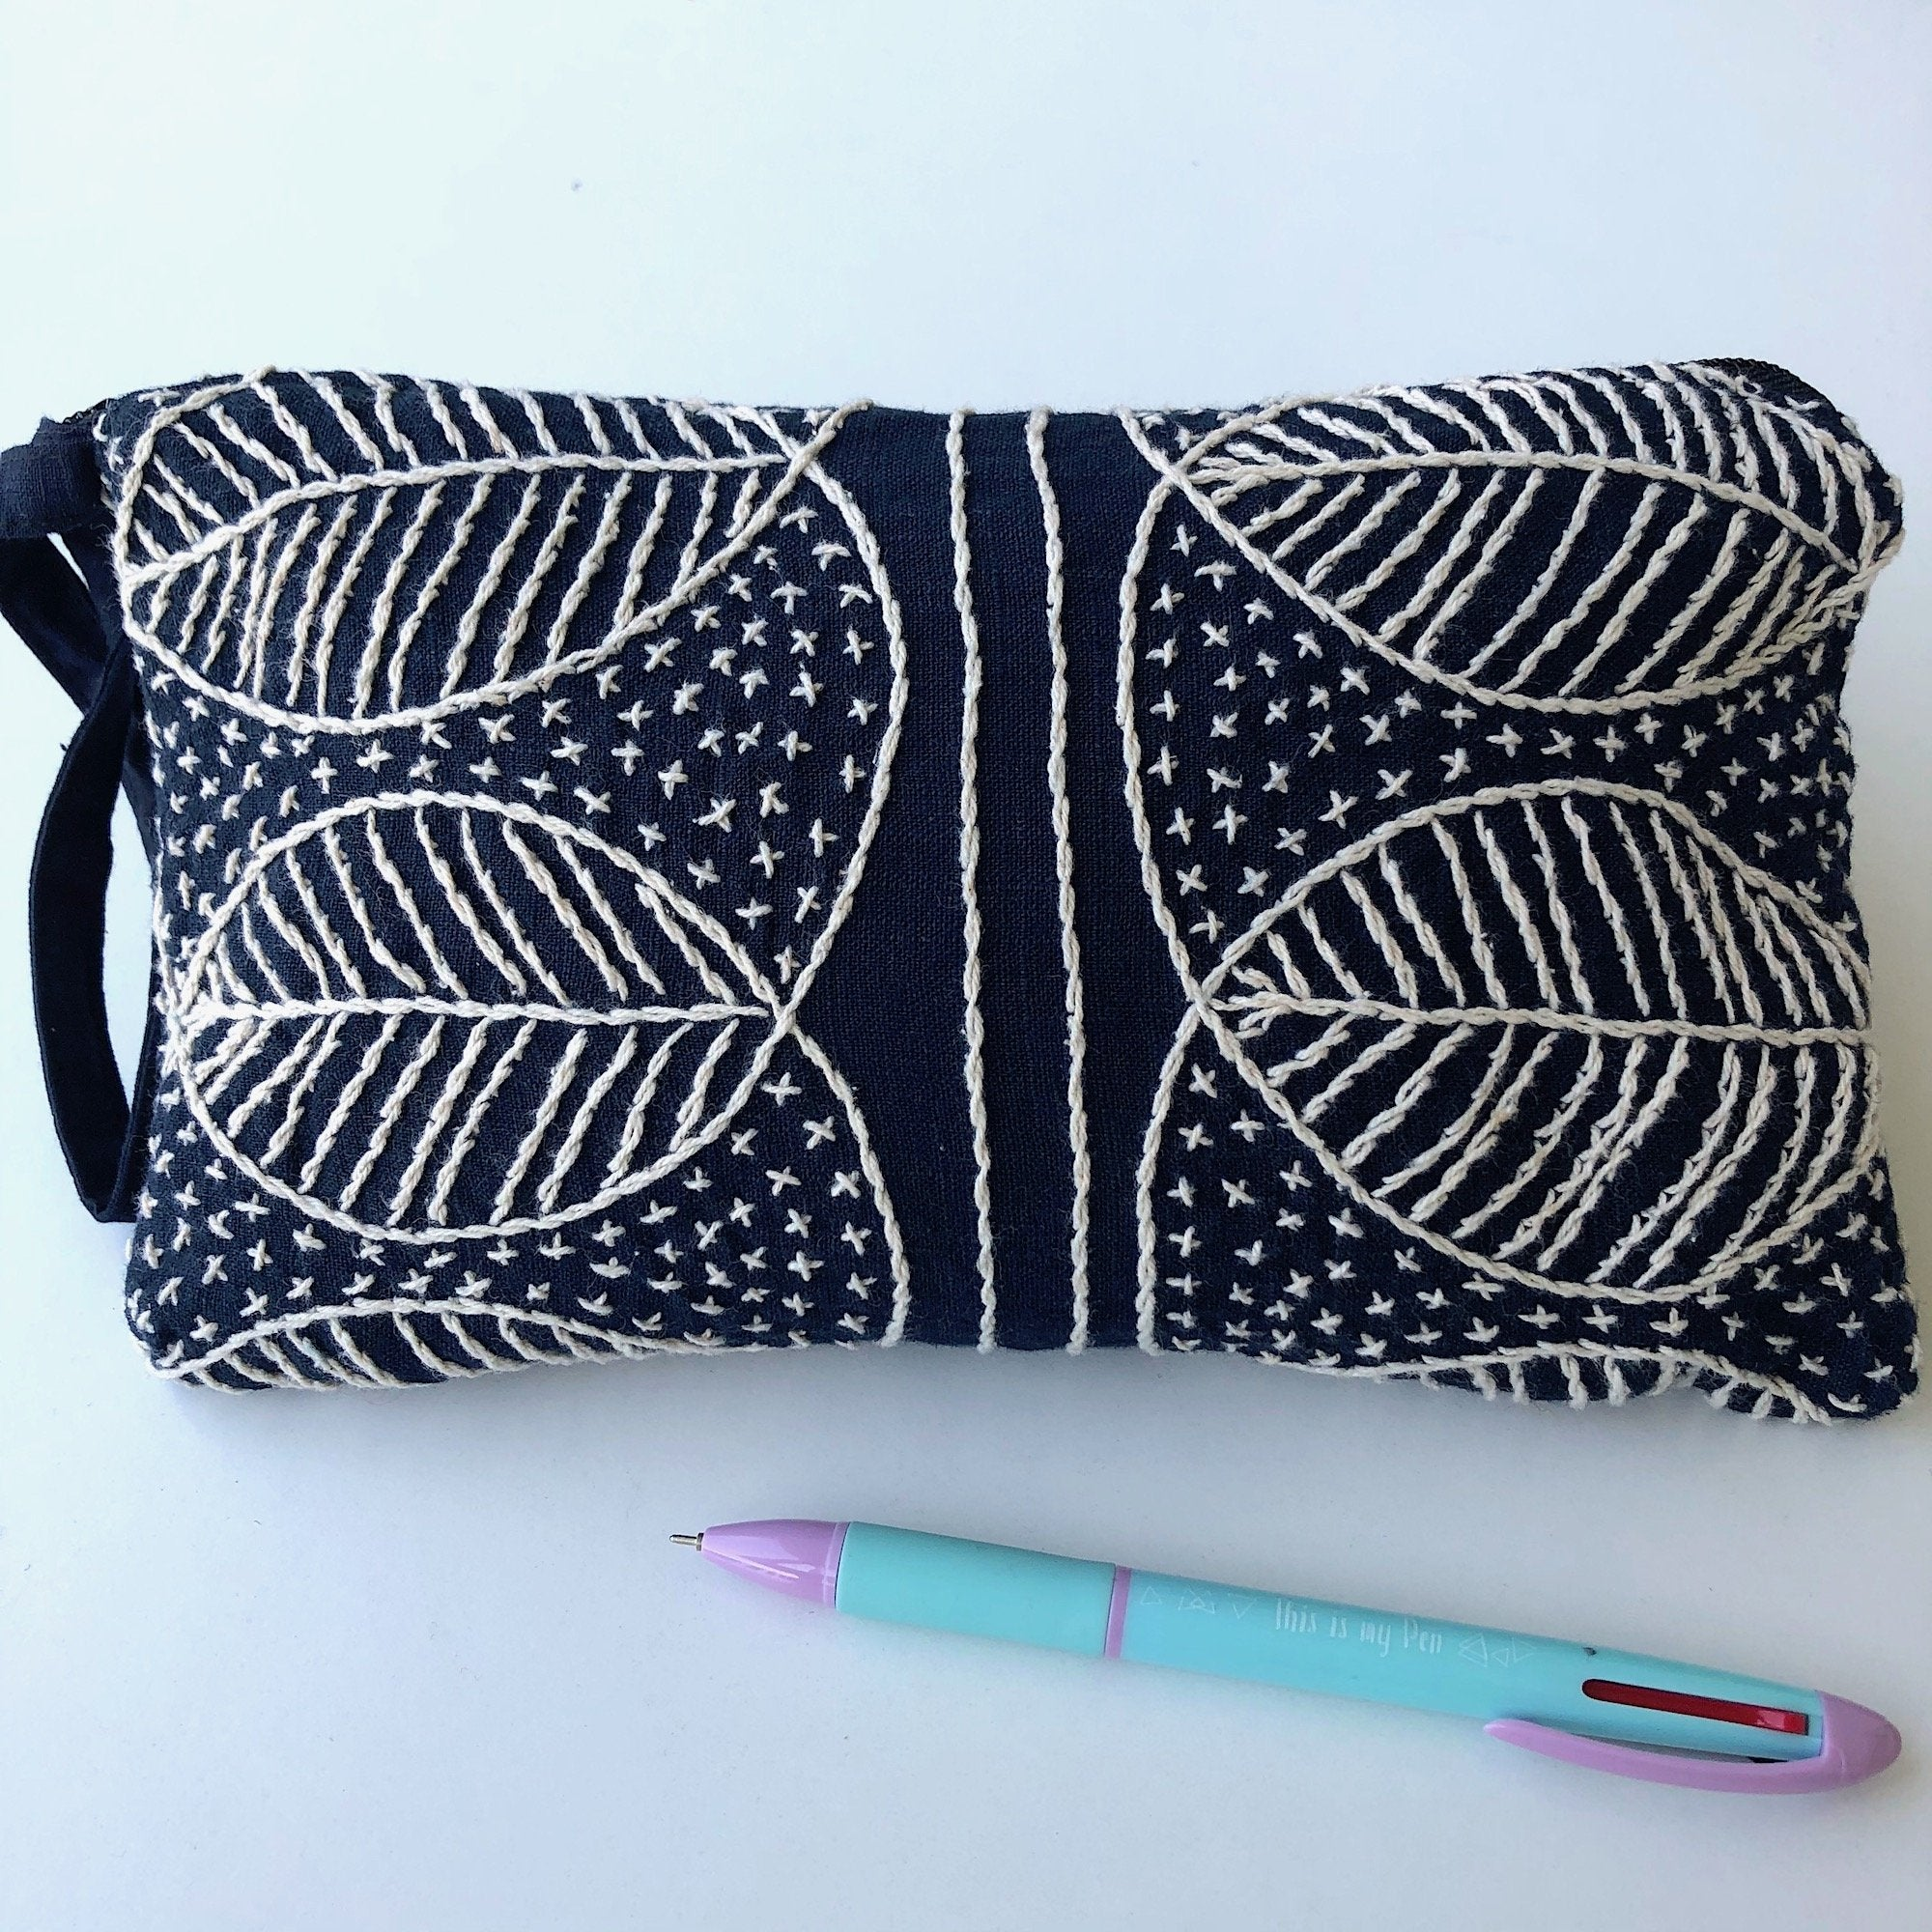 Small Indigo embroidered Clutch Bag - Hmong fabric wristlet - Pallu Design